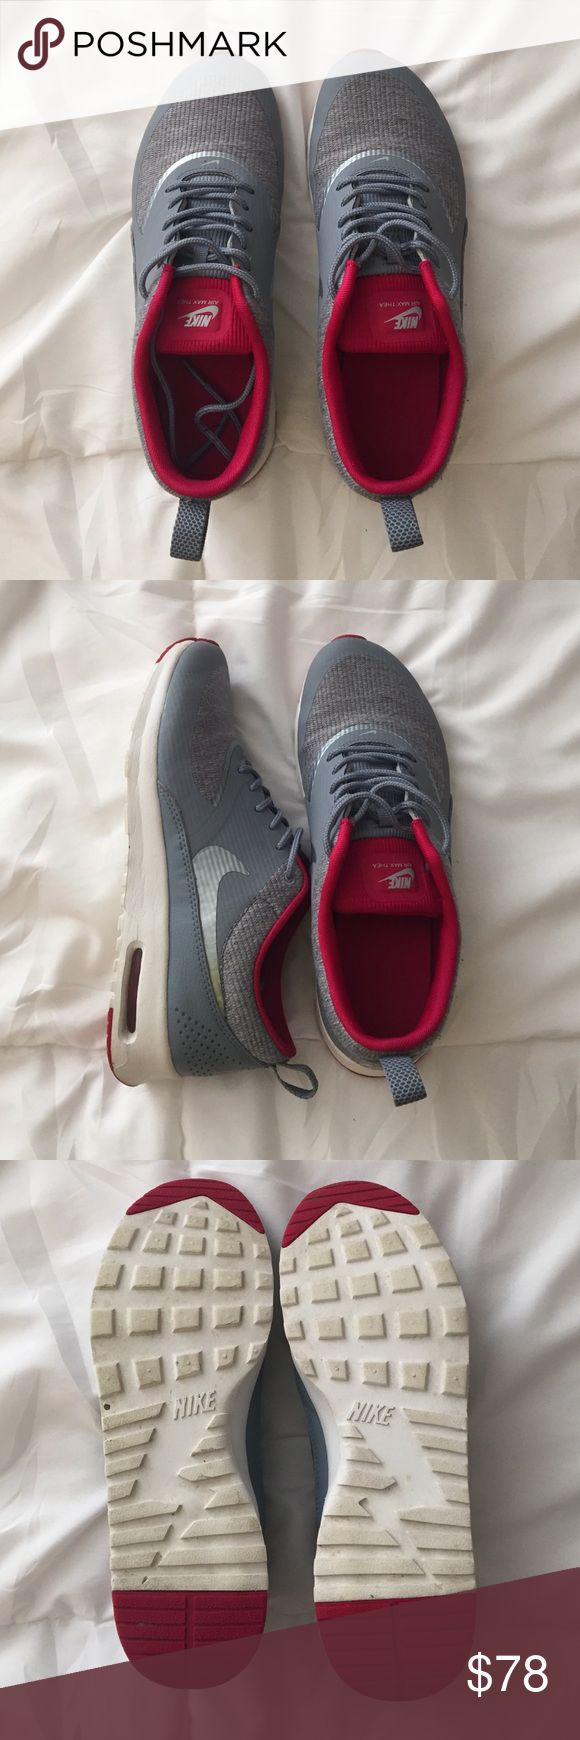 nike air max theas GREAT CONDITION; these were customized so thats why the price is higher!! Nike Shoes Athletic Shoes